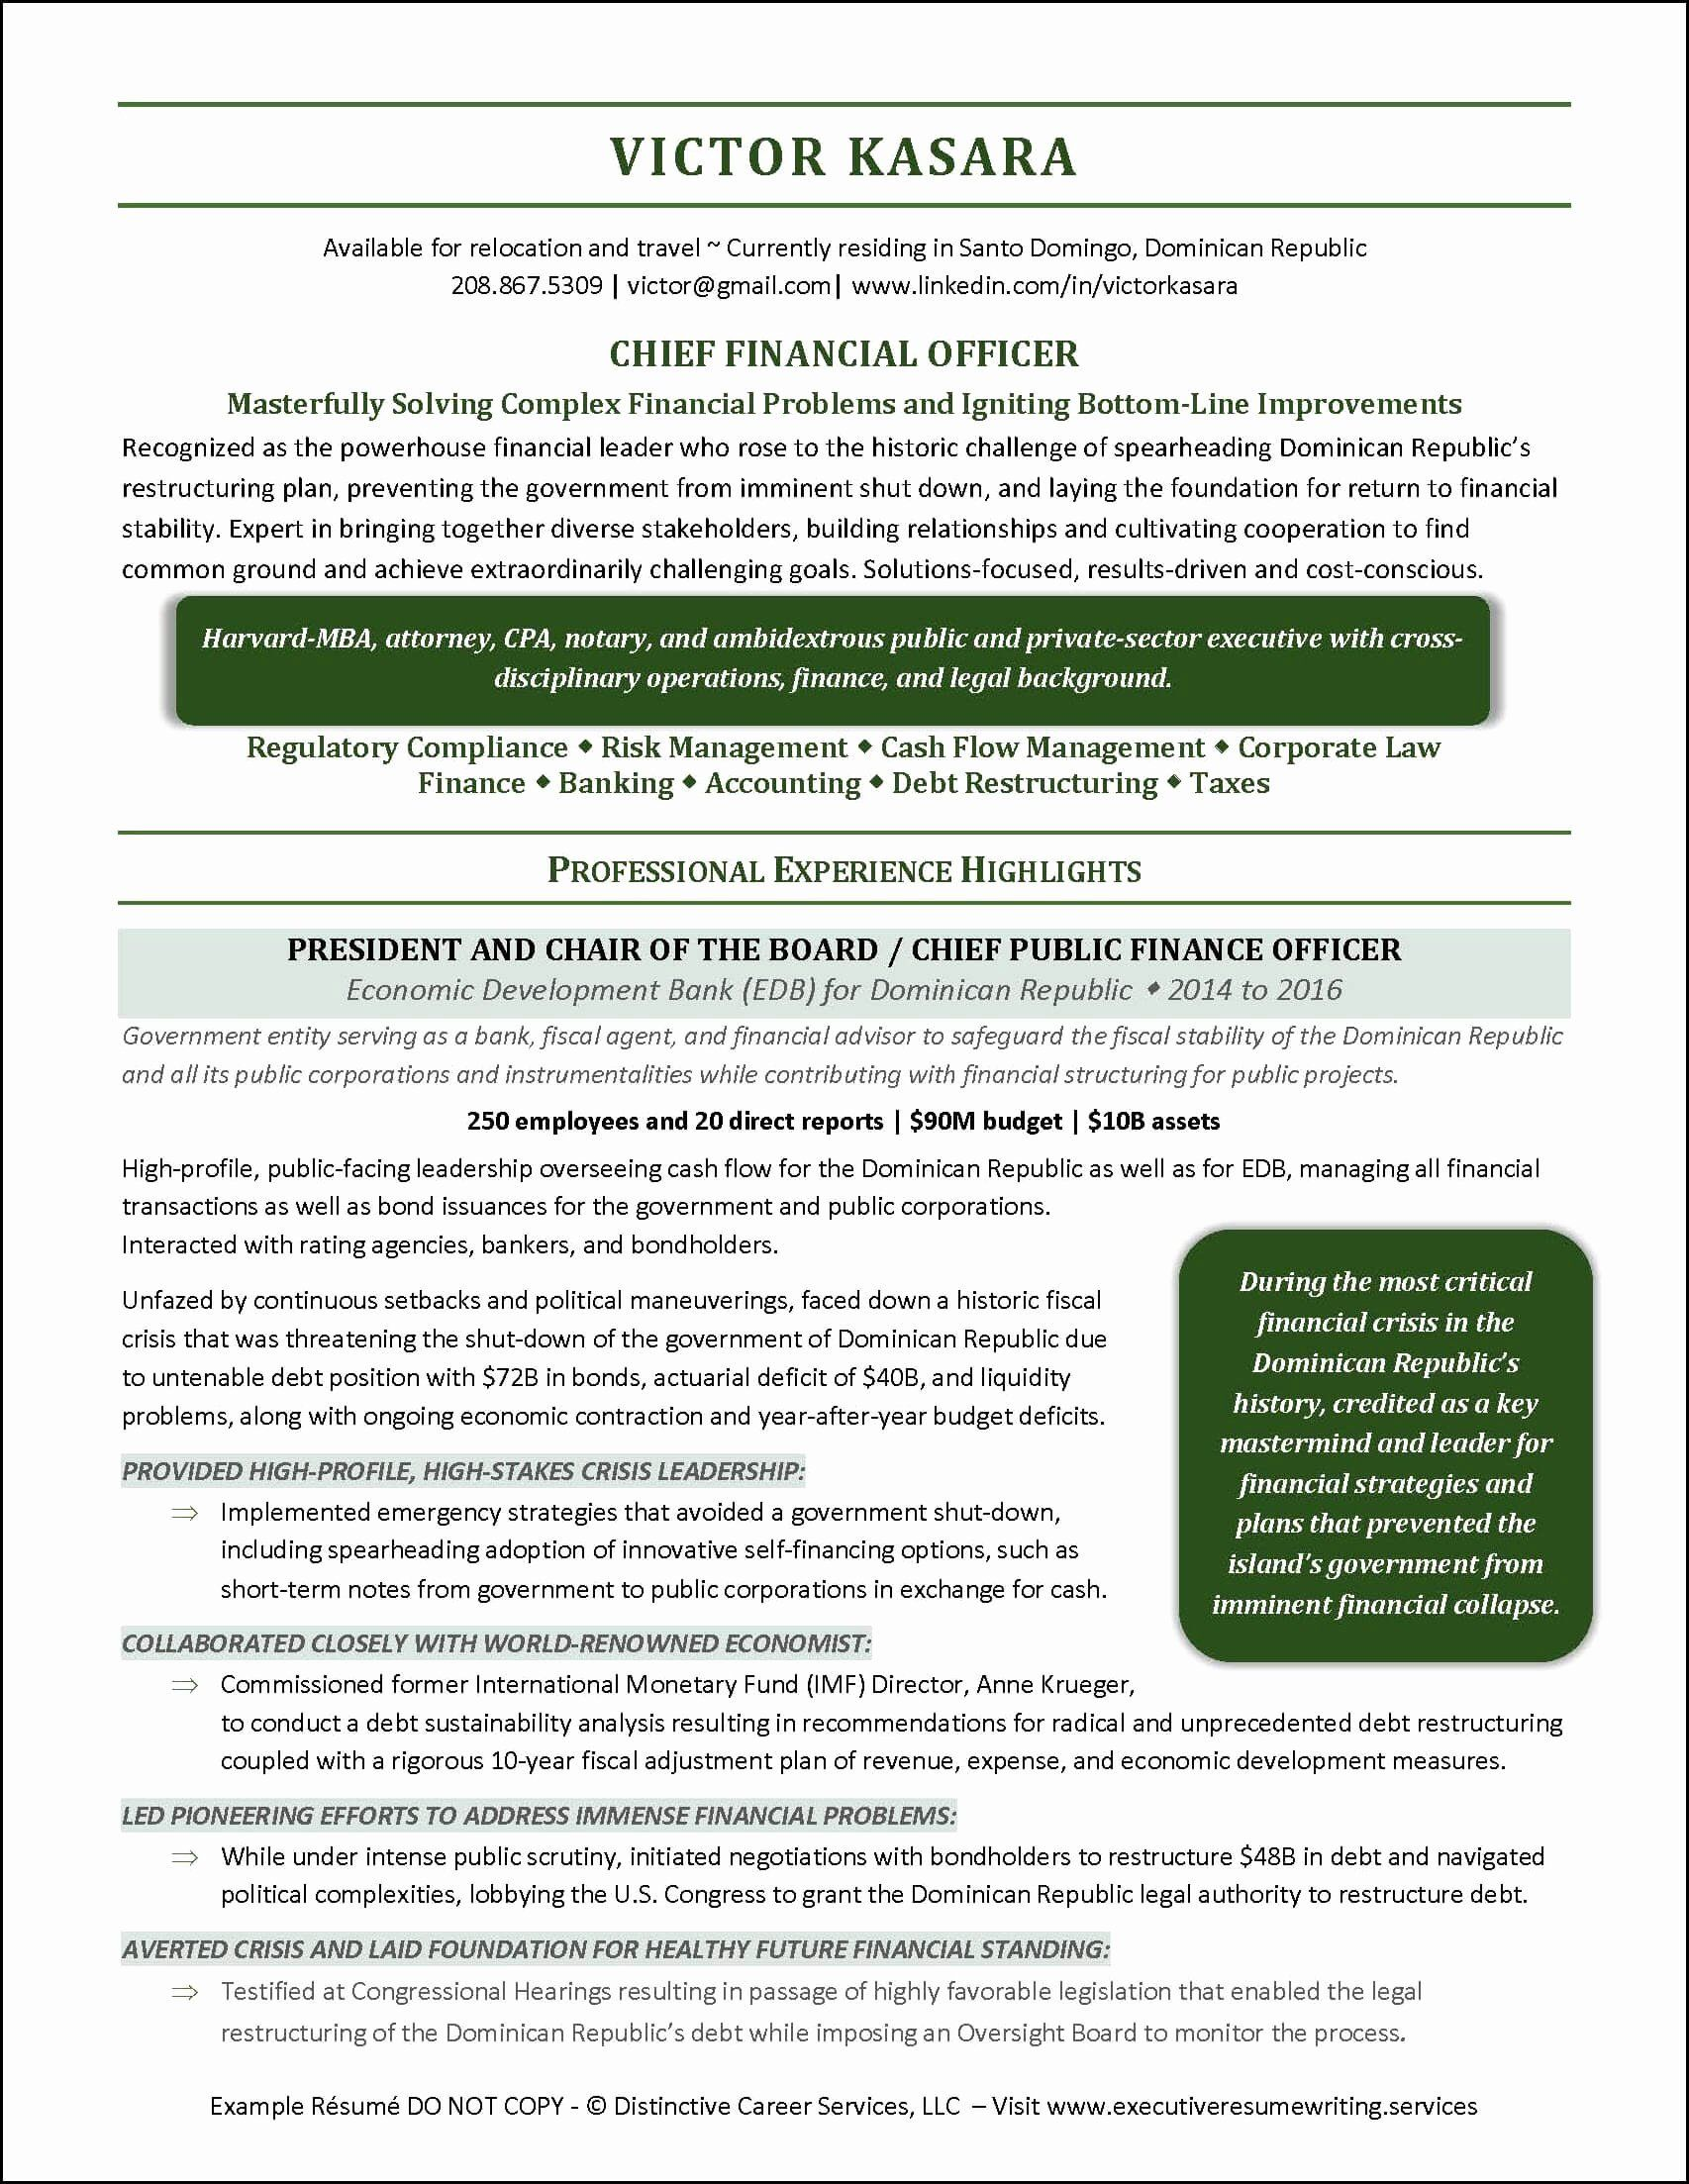 Chief Financial Officer Resume Example Awesome Chief Financial Ficer Resume Page 1 Executive Resume Resume Resume Examples